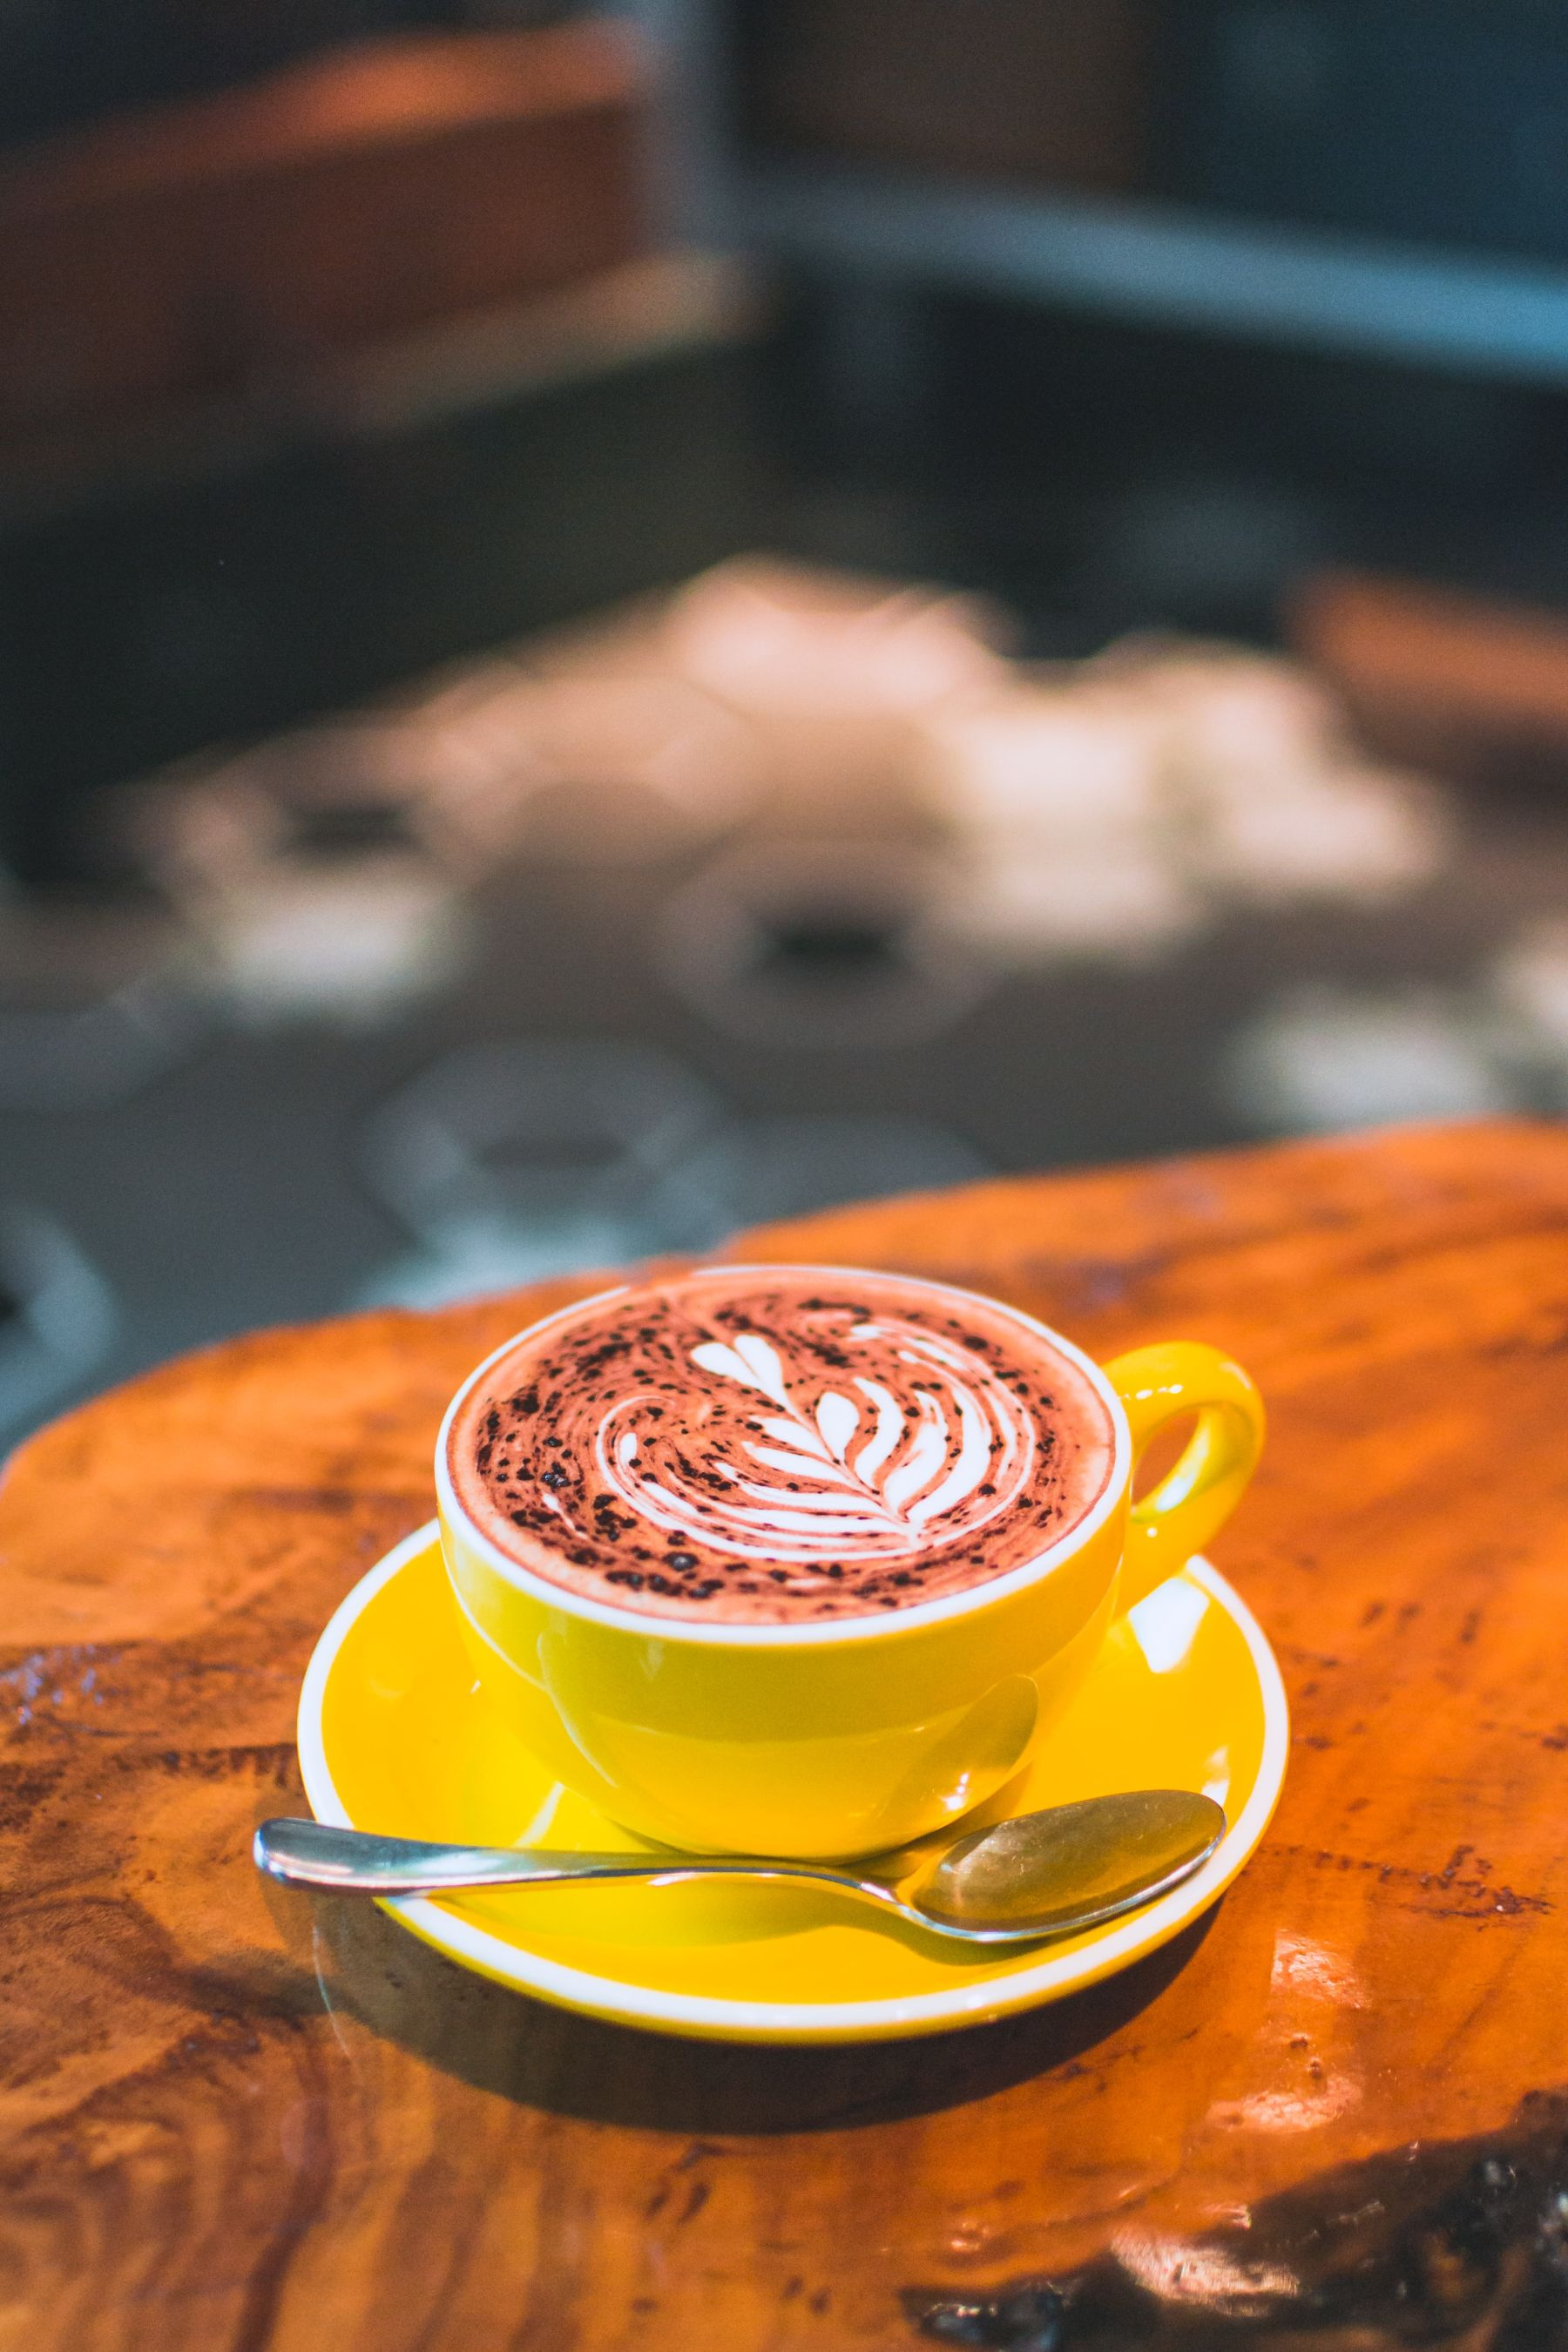 Everything I Brew, I Brew for You! Celebrate National Cappuccino Day on November 8.